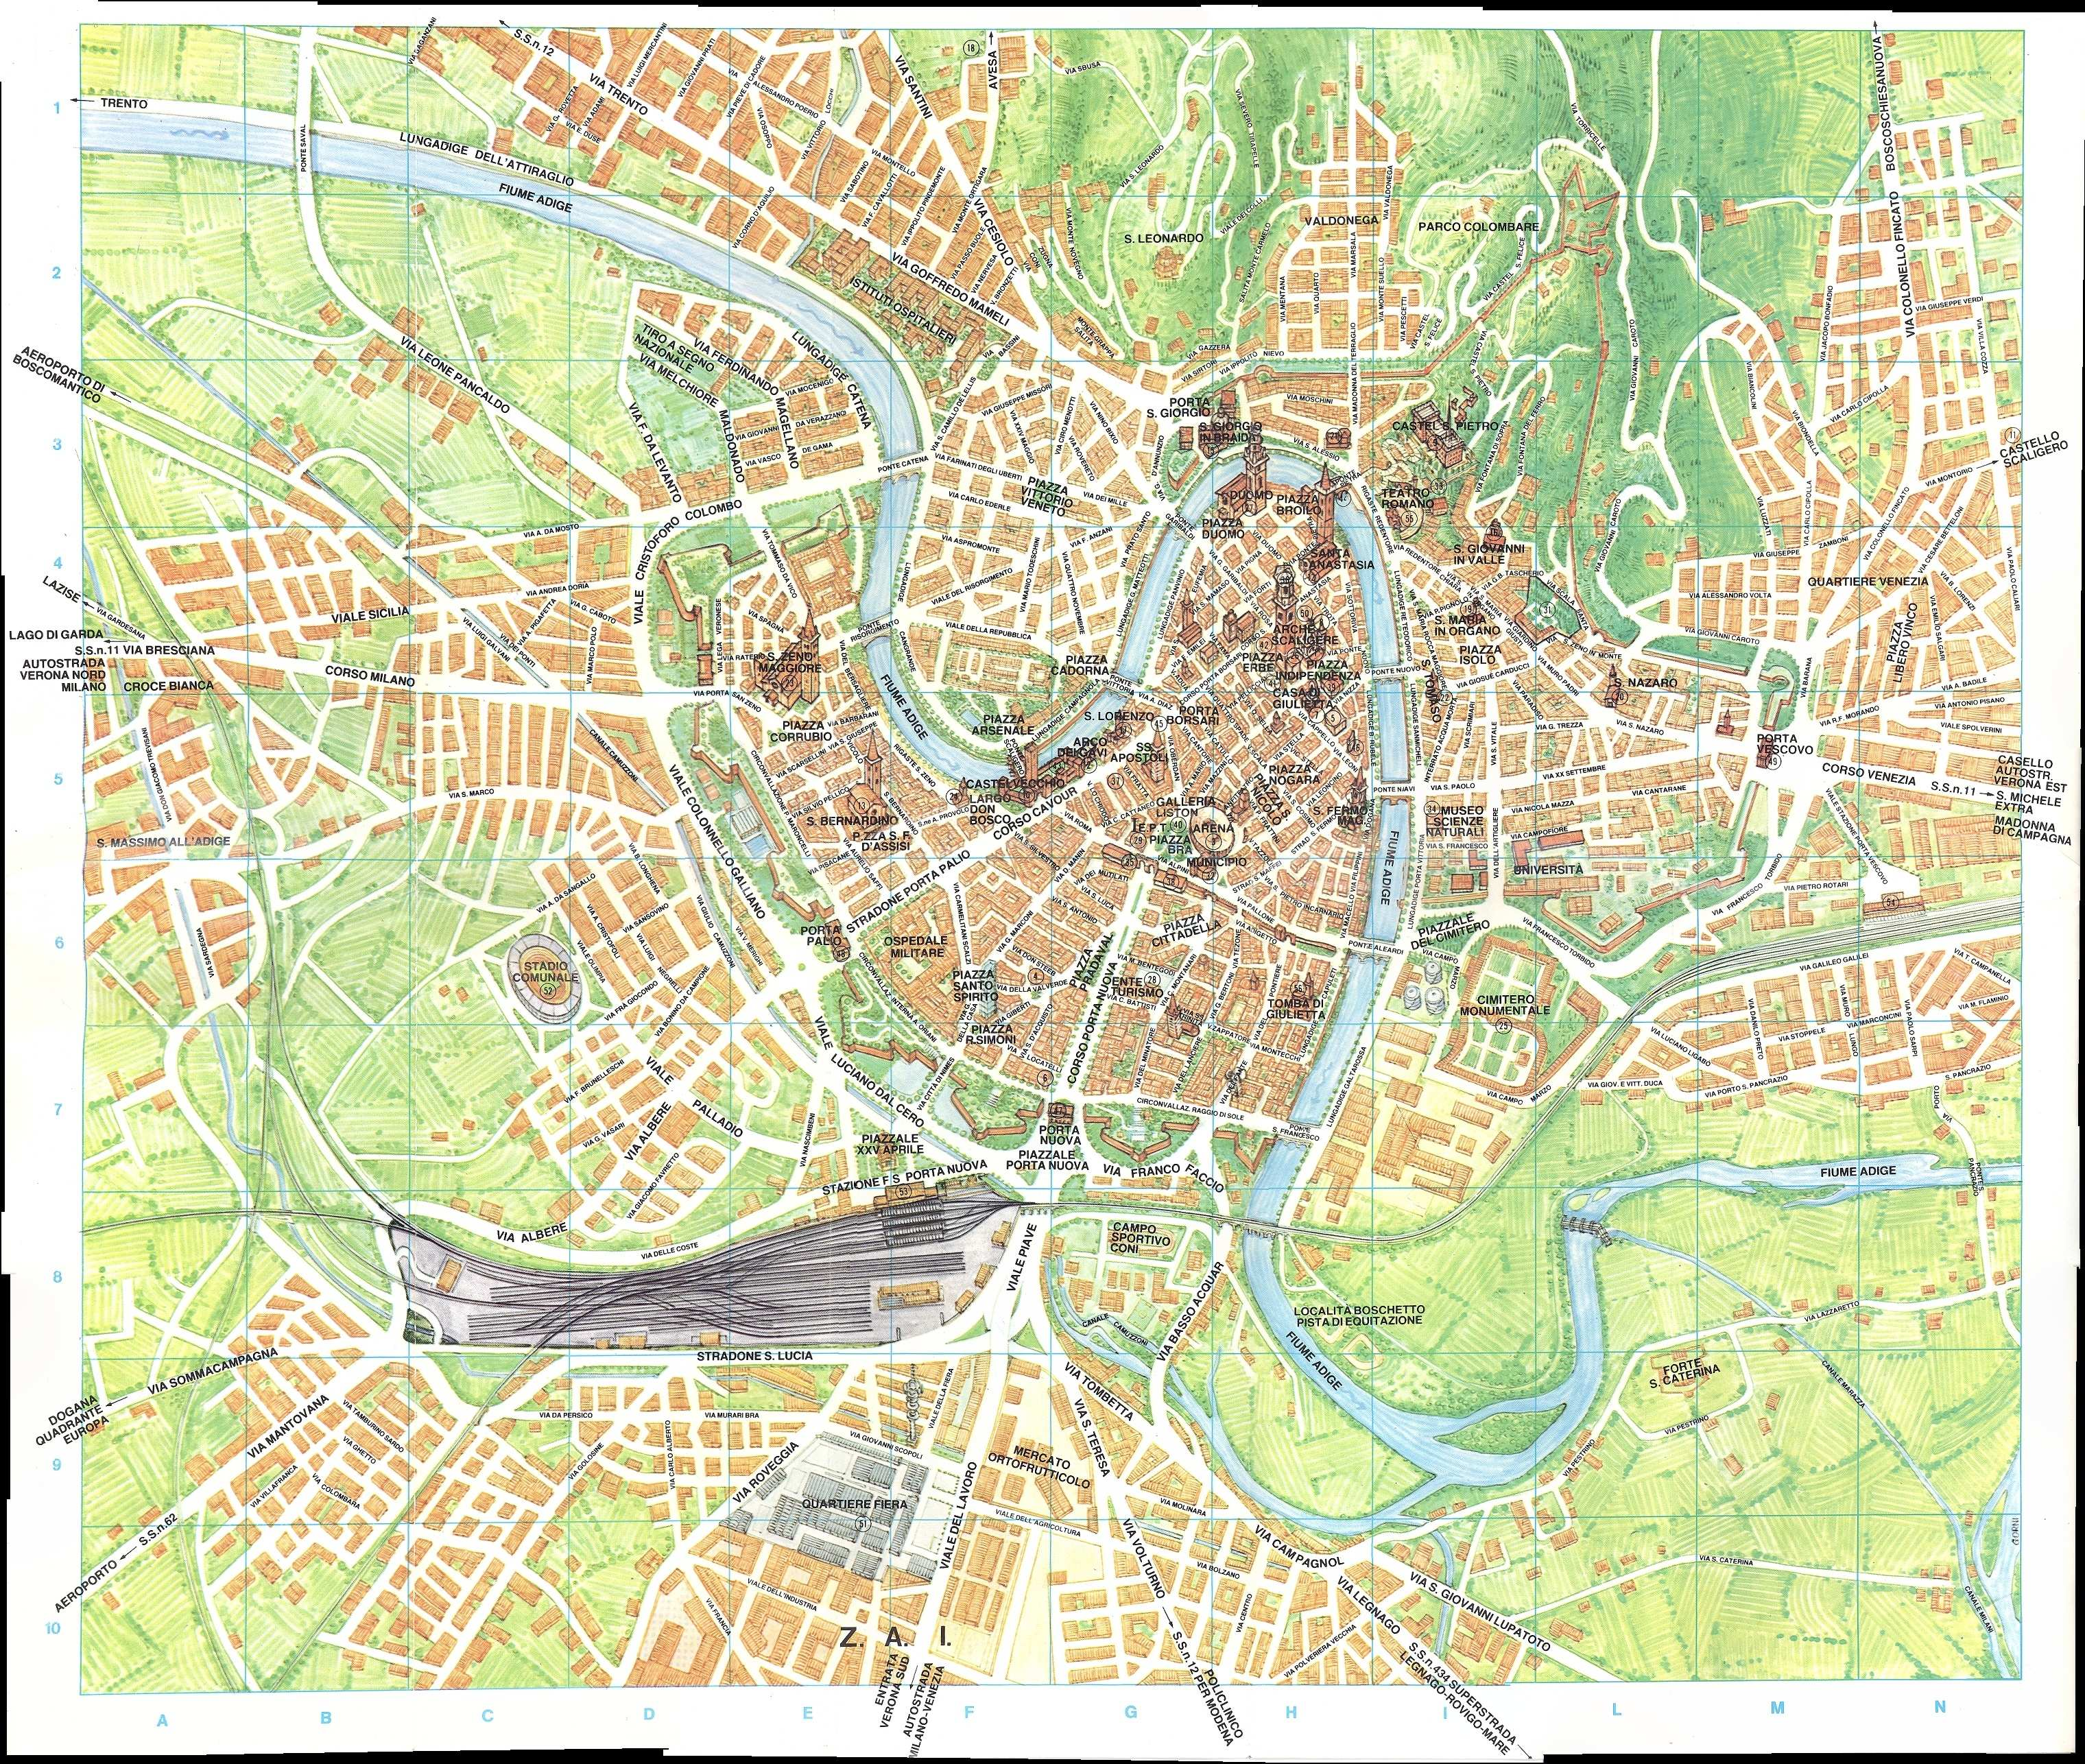 http://www.orangesmile.com/common/img_city_maps/verona-map-0.jpg